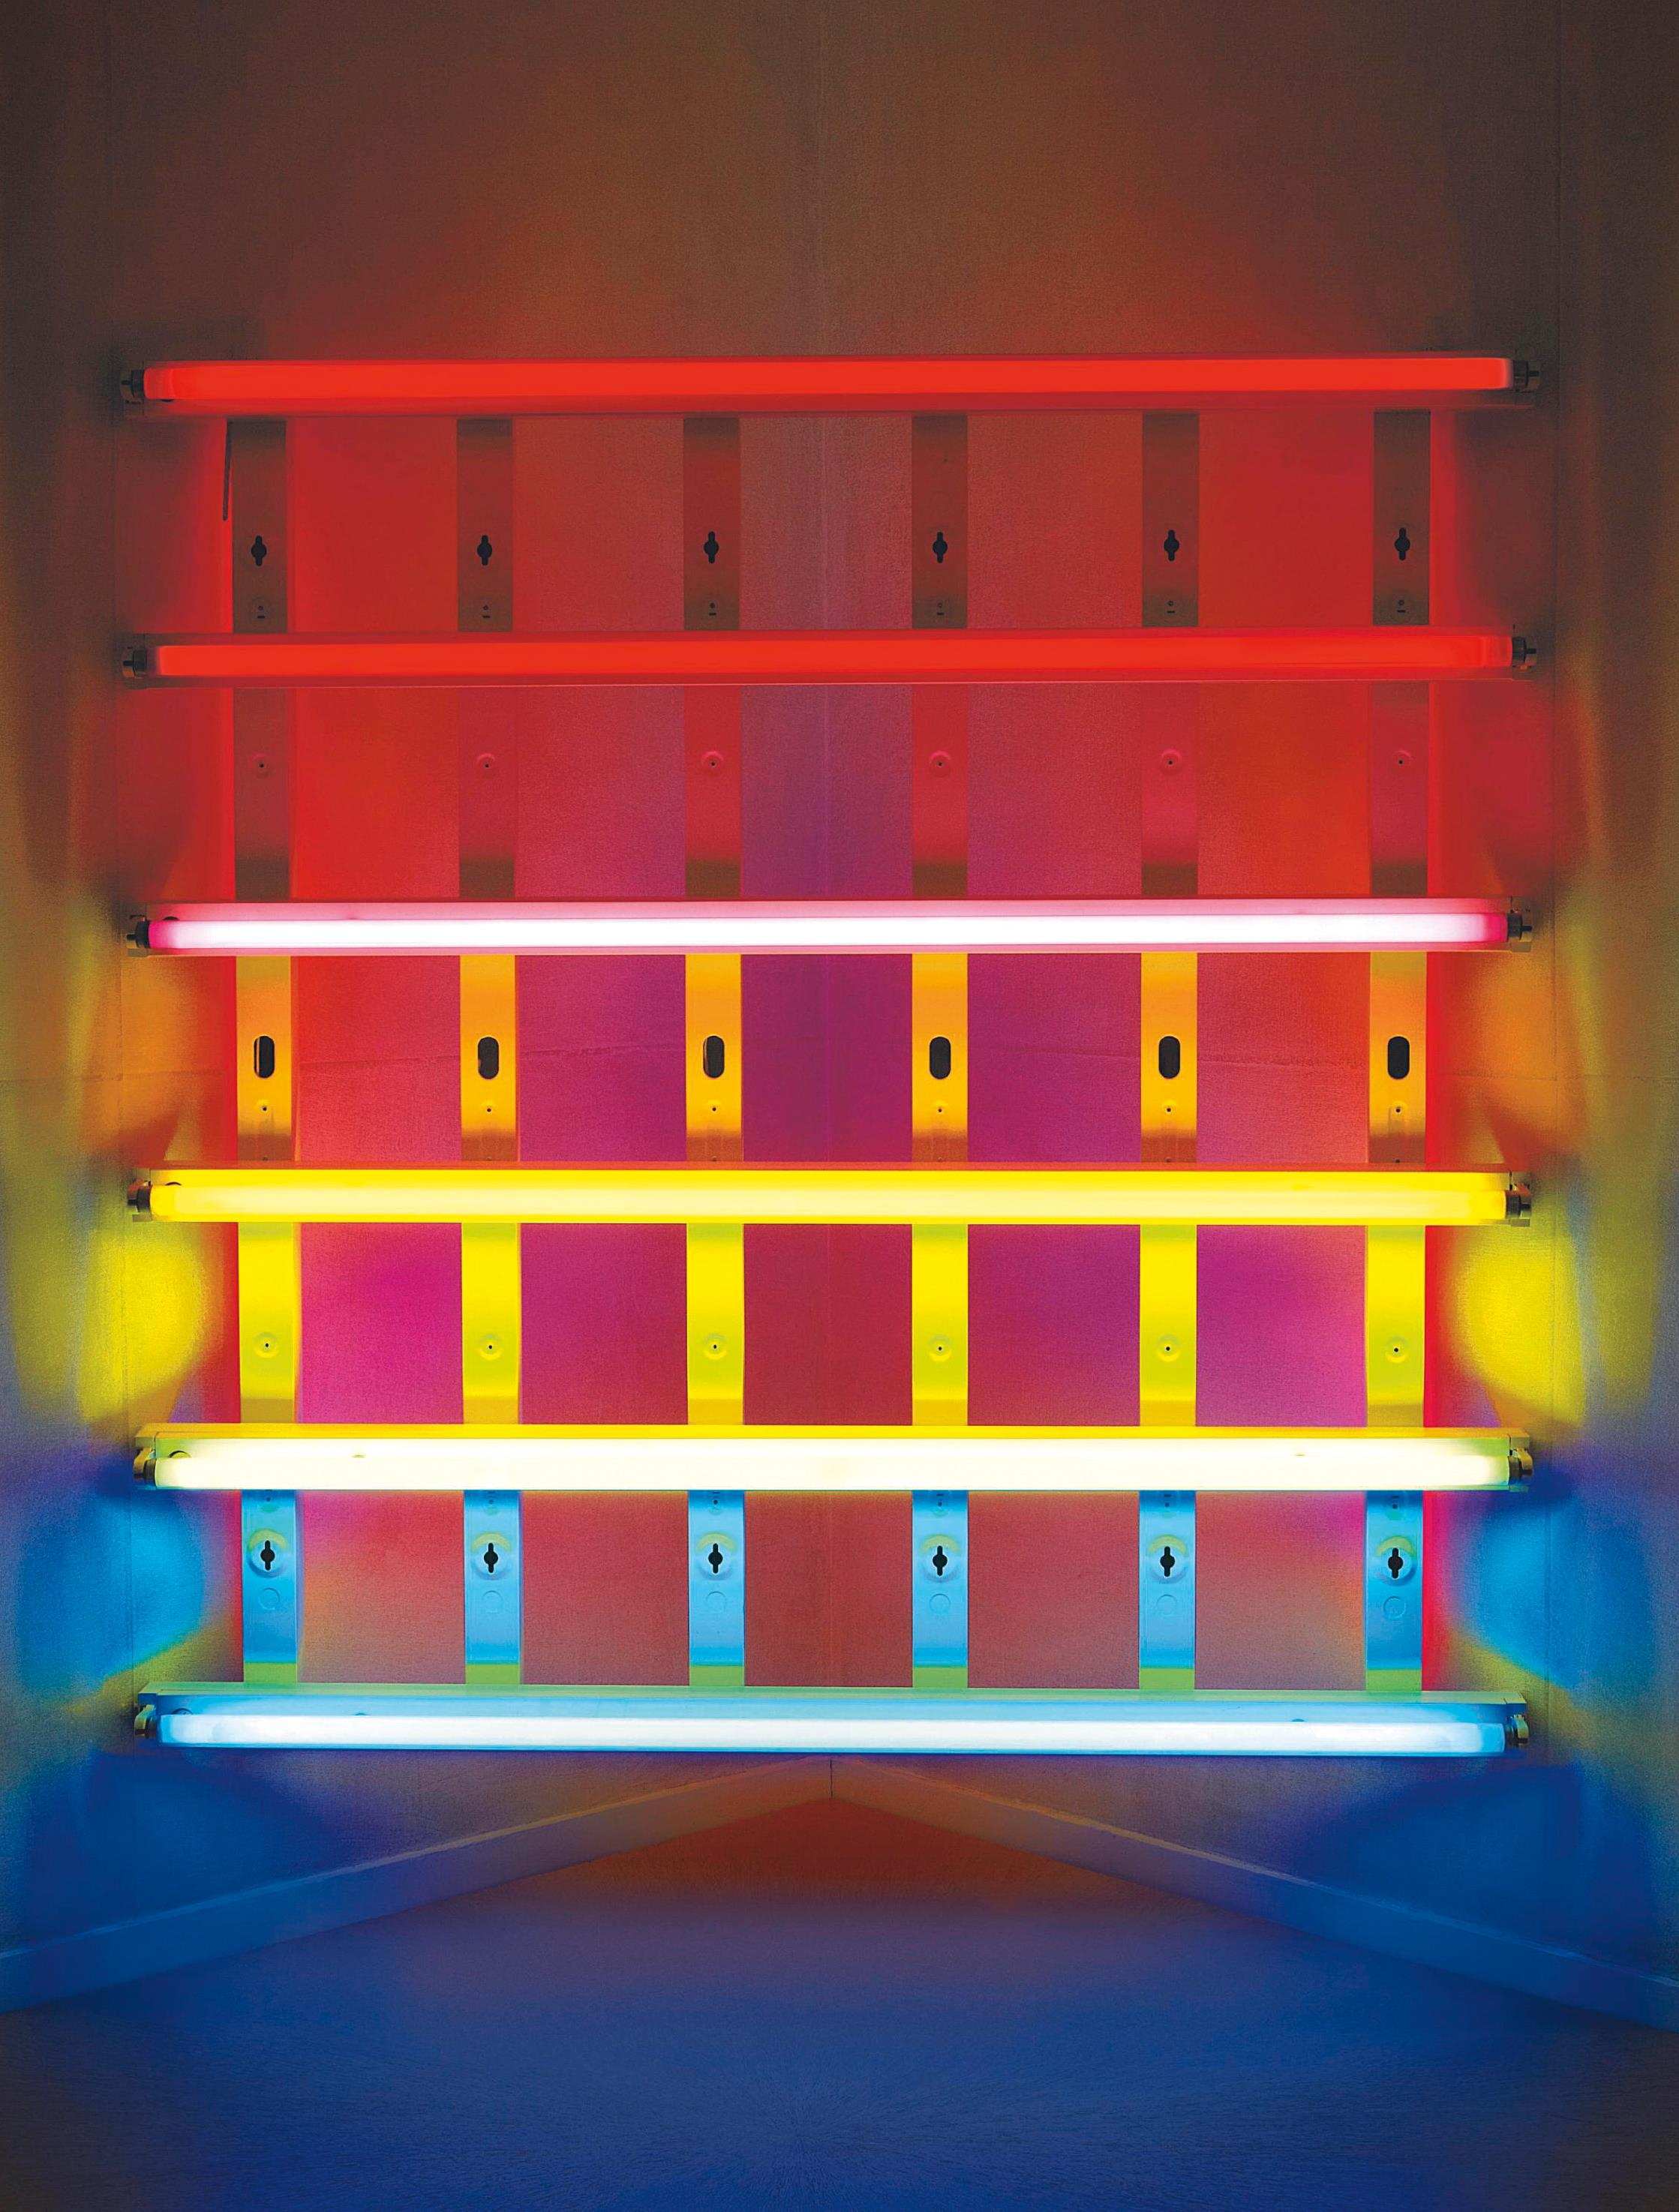 Dan Flavin-Untitled (for Leo Castelli at his gallery's 30th anniversary) 3-1989